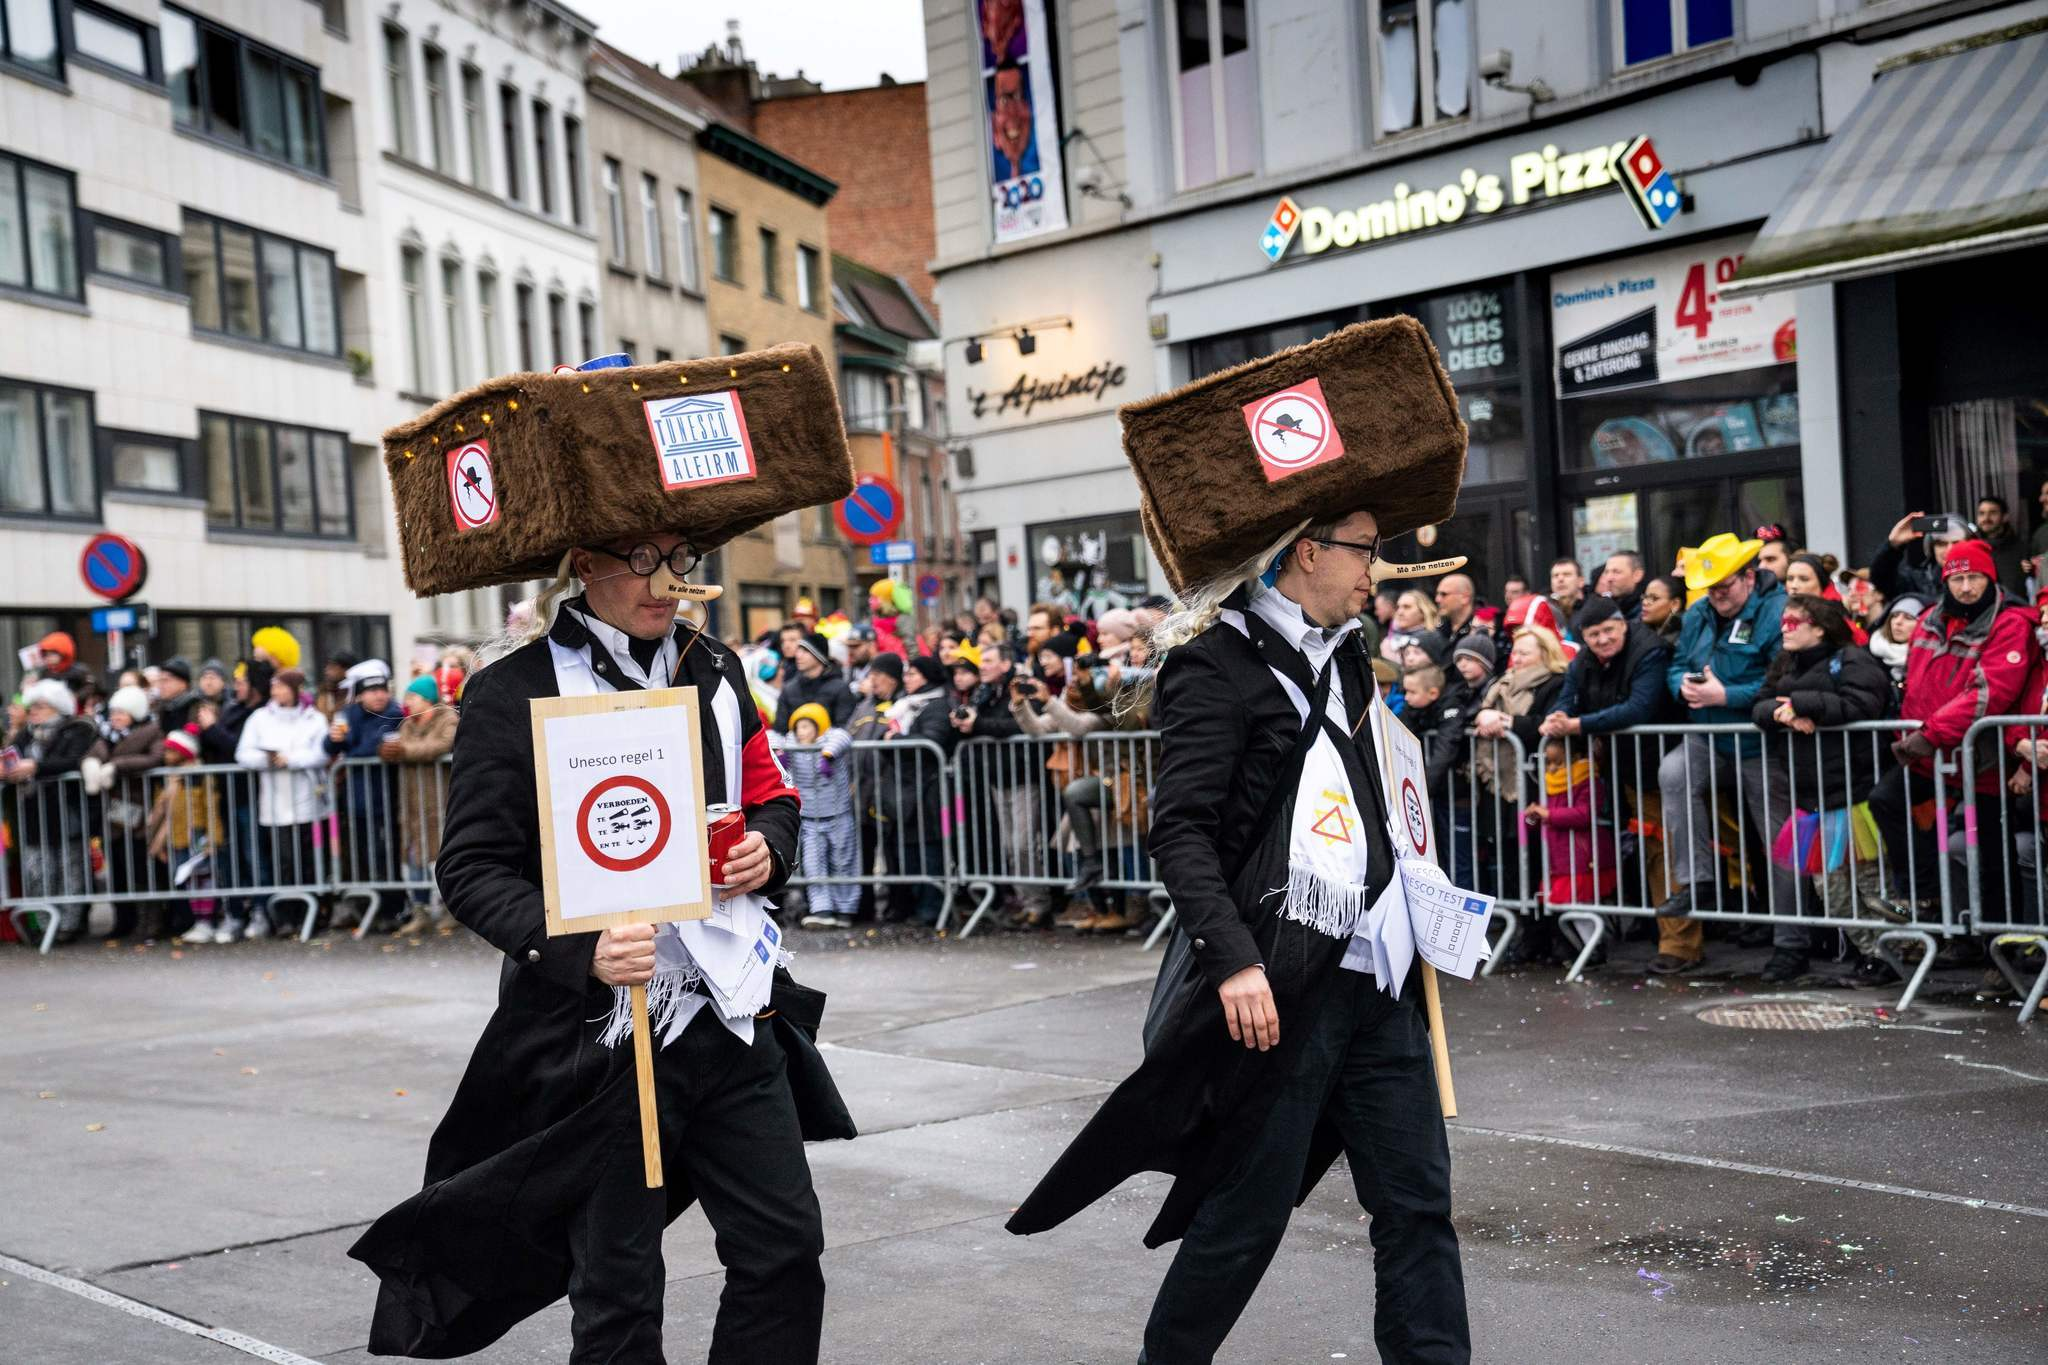 Belgian carnival features revelers marching in Nazi uniforms and mocks Orthodox Jews